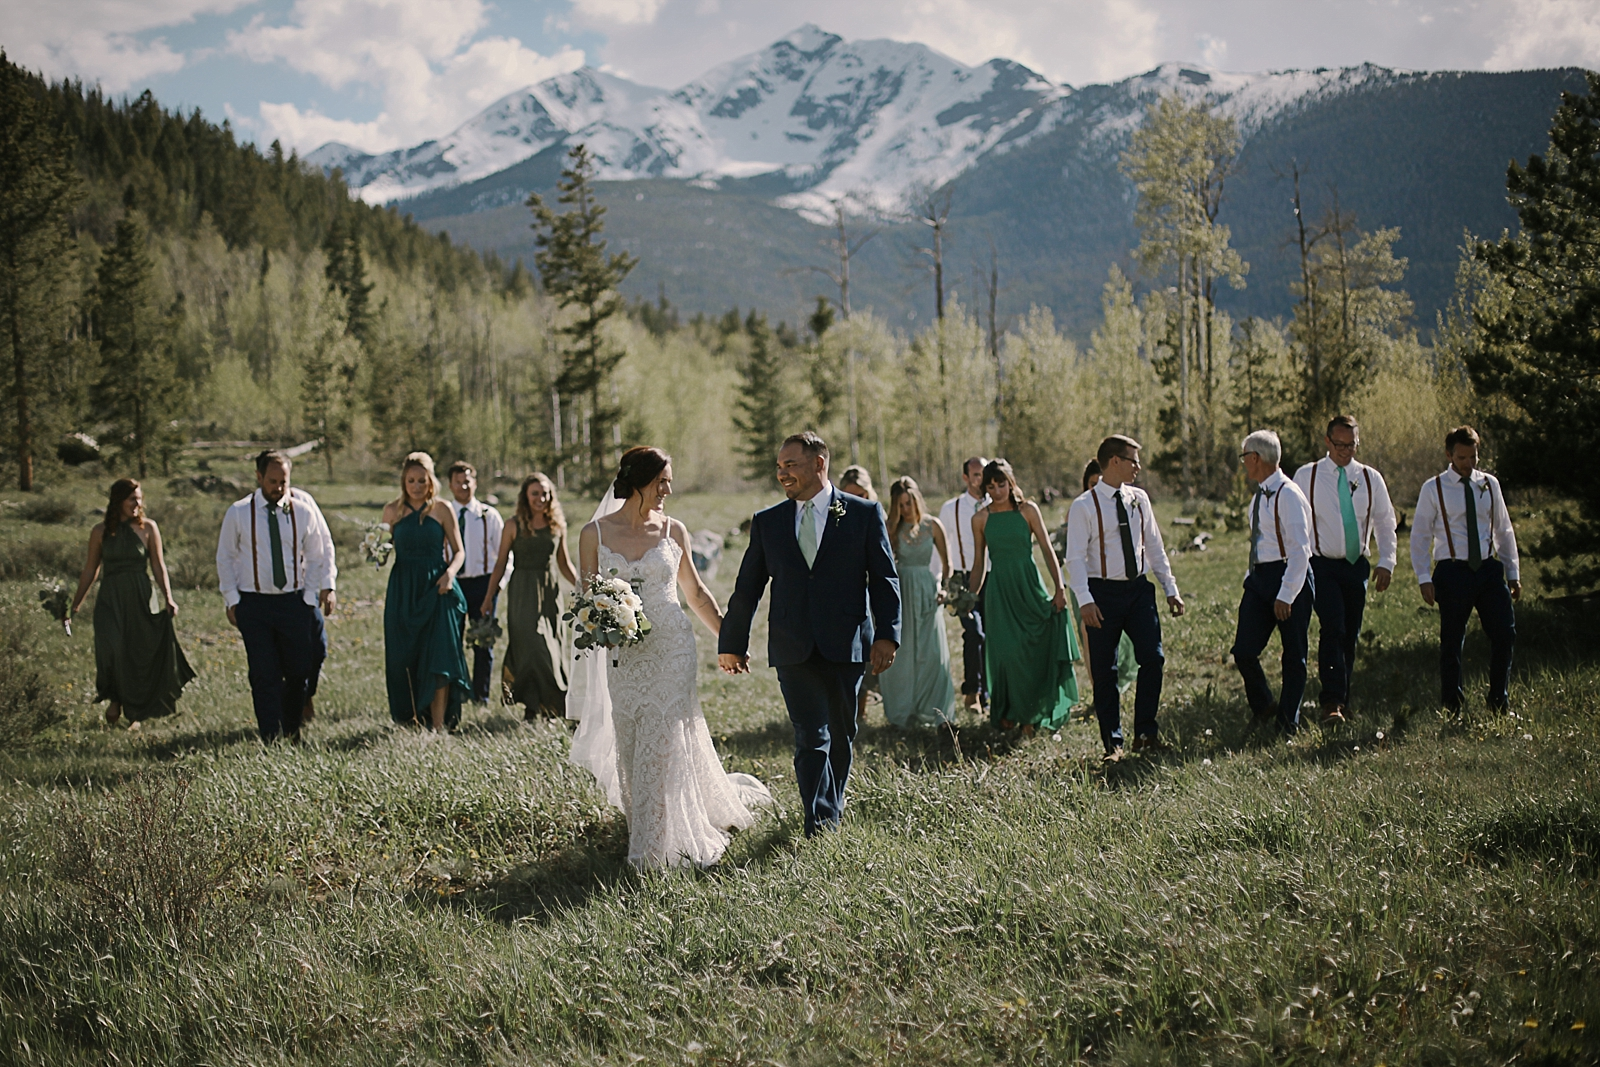 bridal party at agape, the church at agape outpost wedding, breckenridge colorado wedding, breckenridge colorado wedding photographer, agape outpost wedding photographer